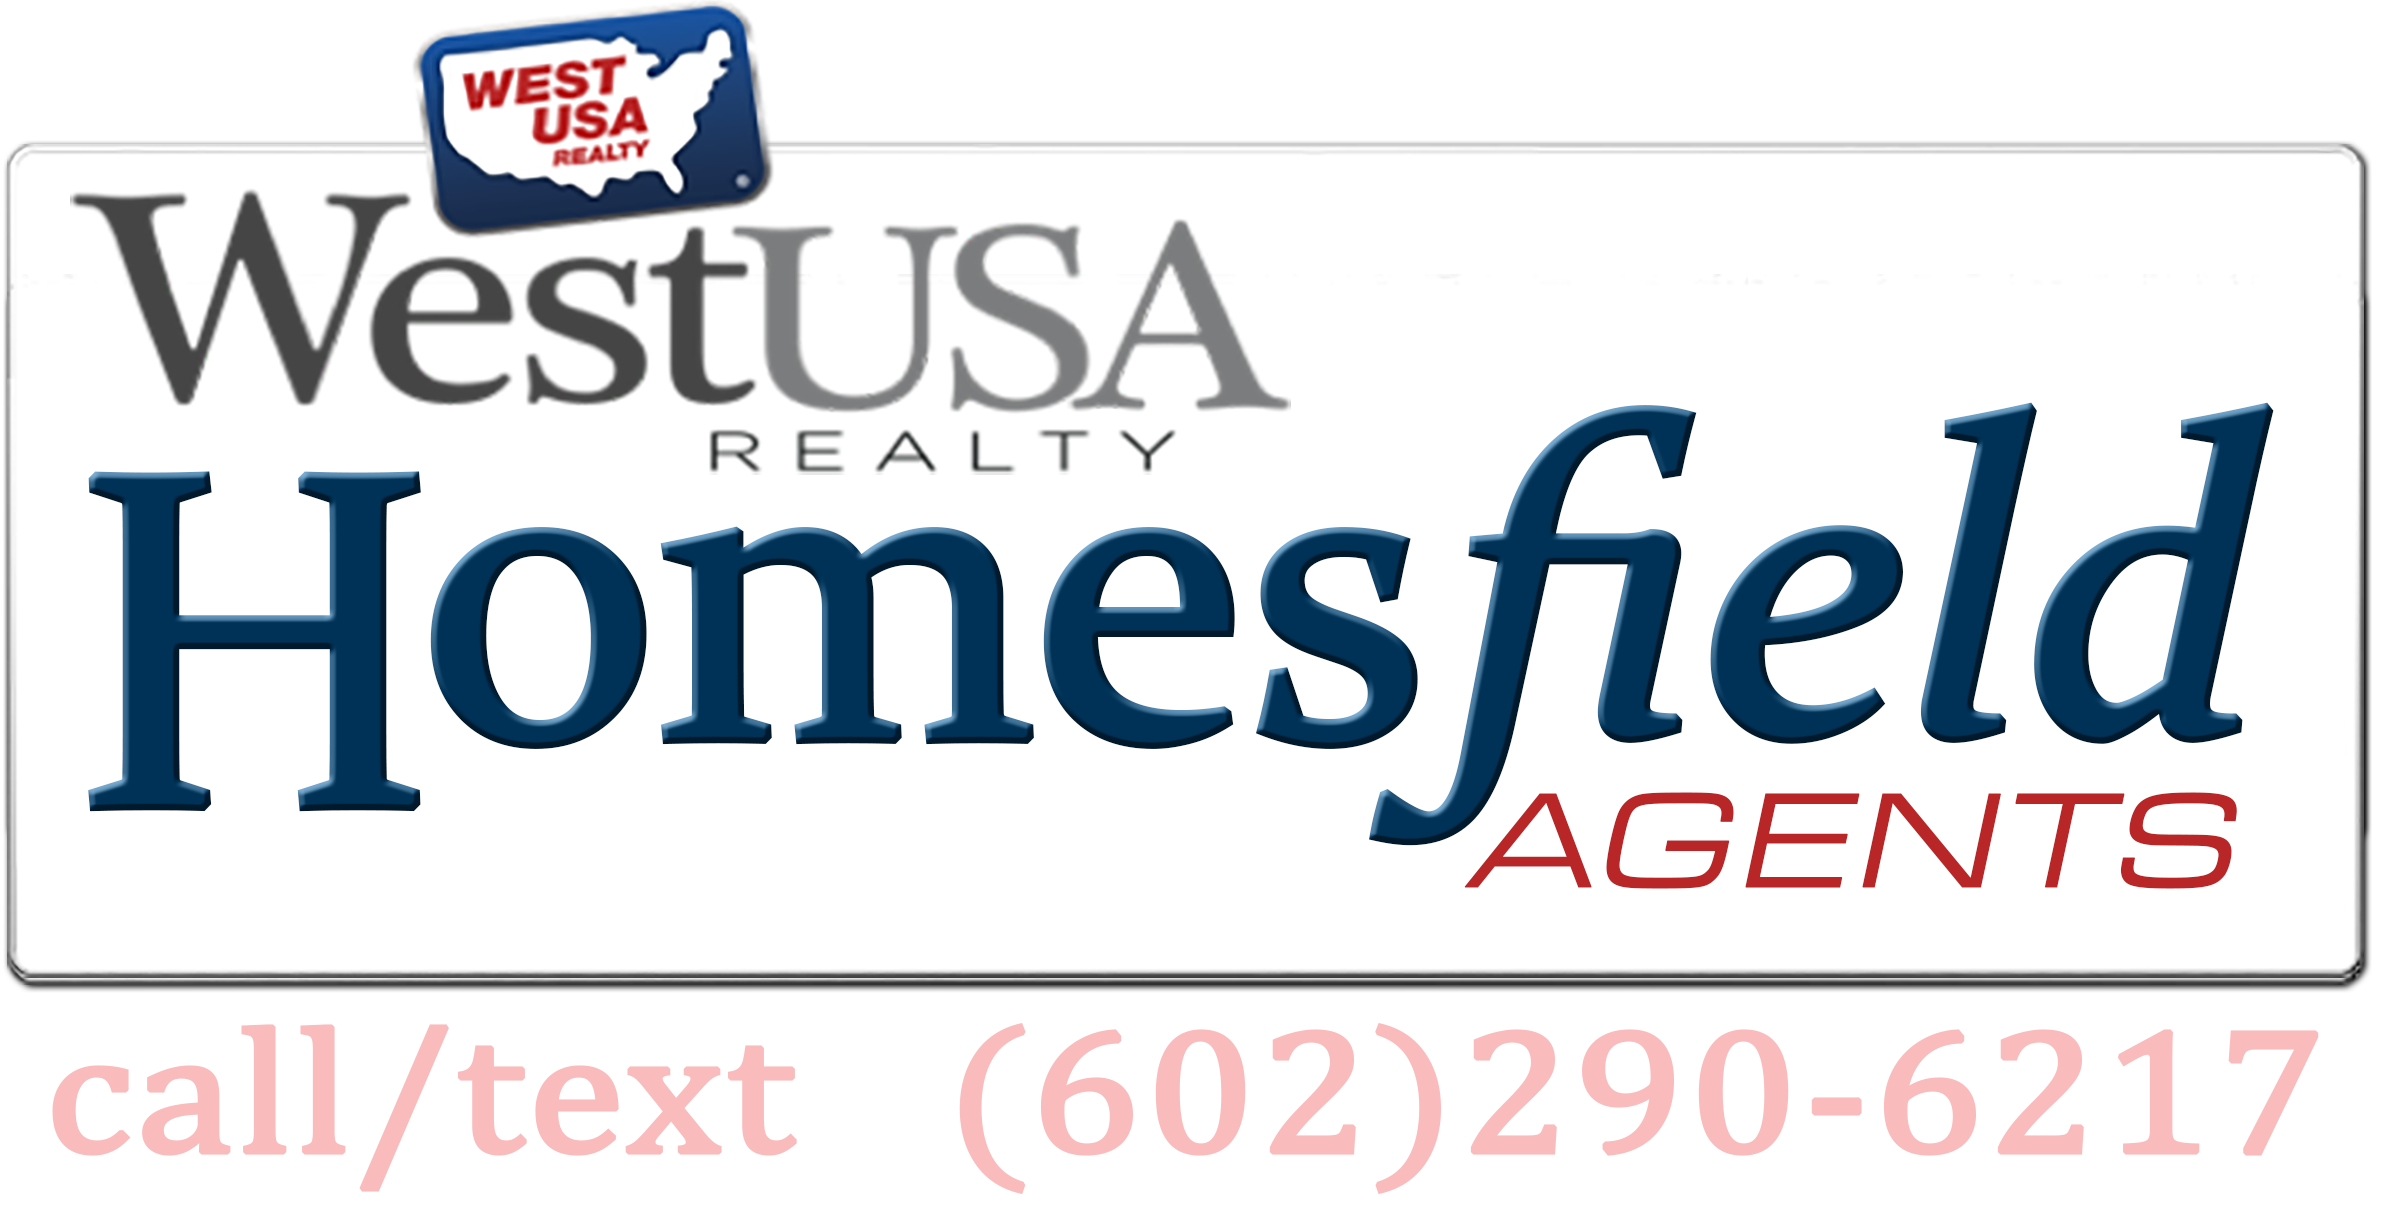 Homesfield Agents of West USA Realty in Scottsdale Arizona